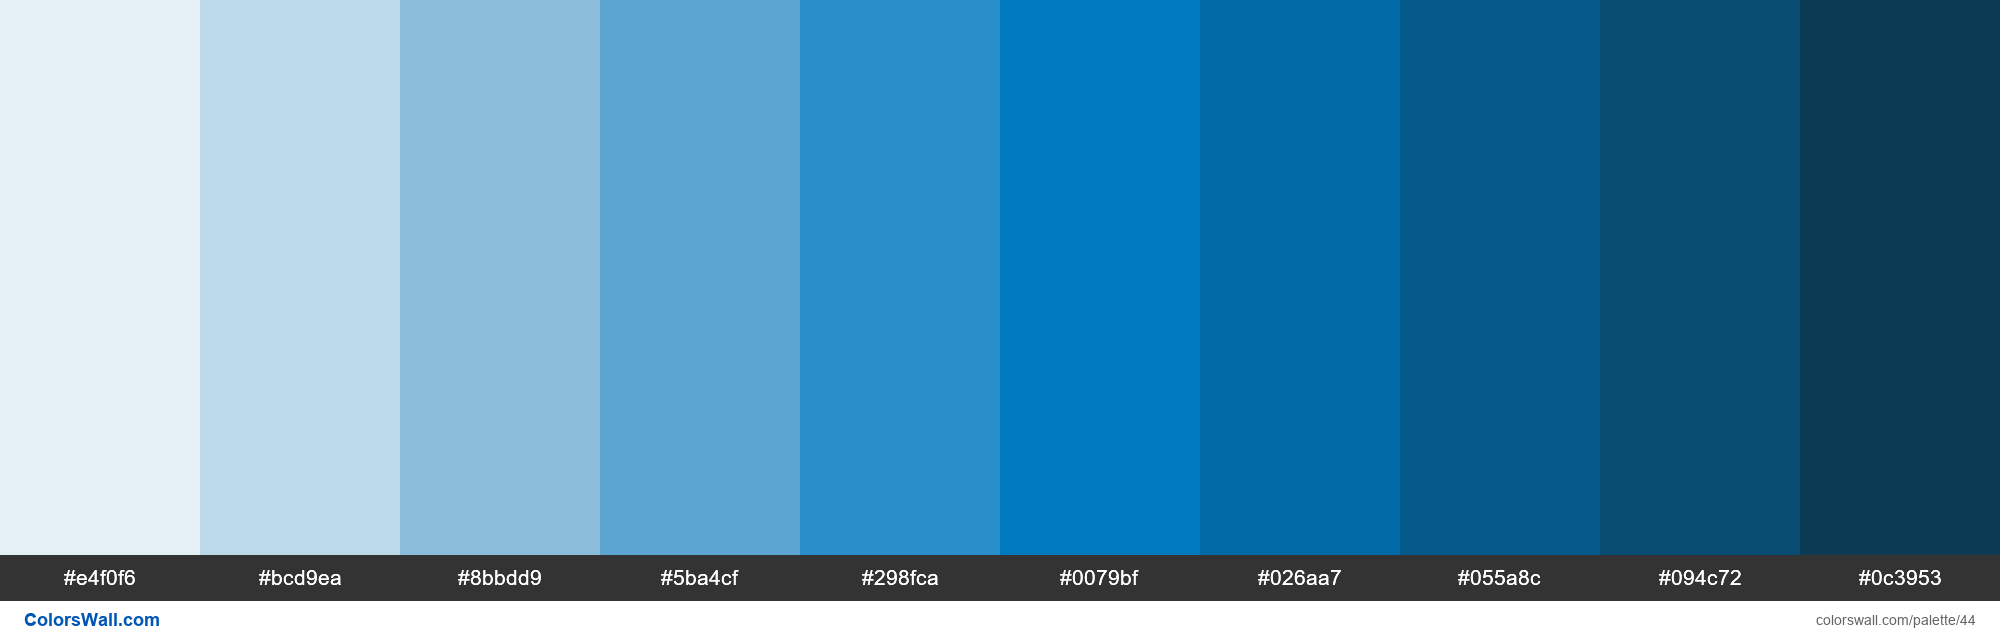 Trello Blue colors palette - #44